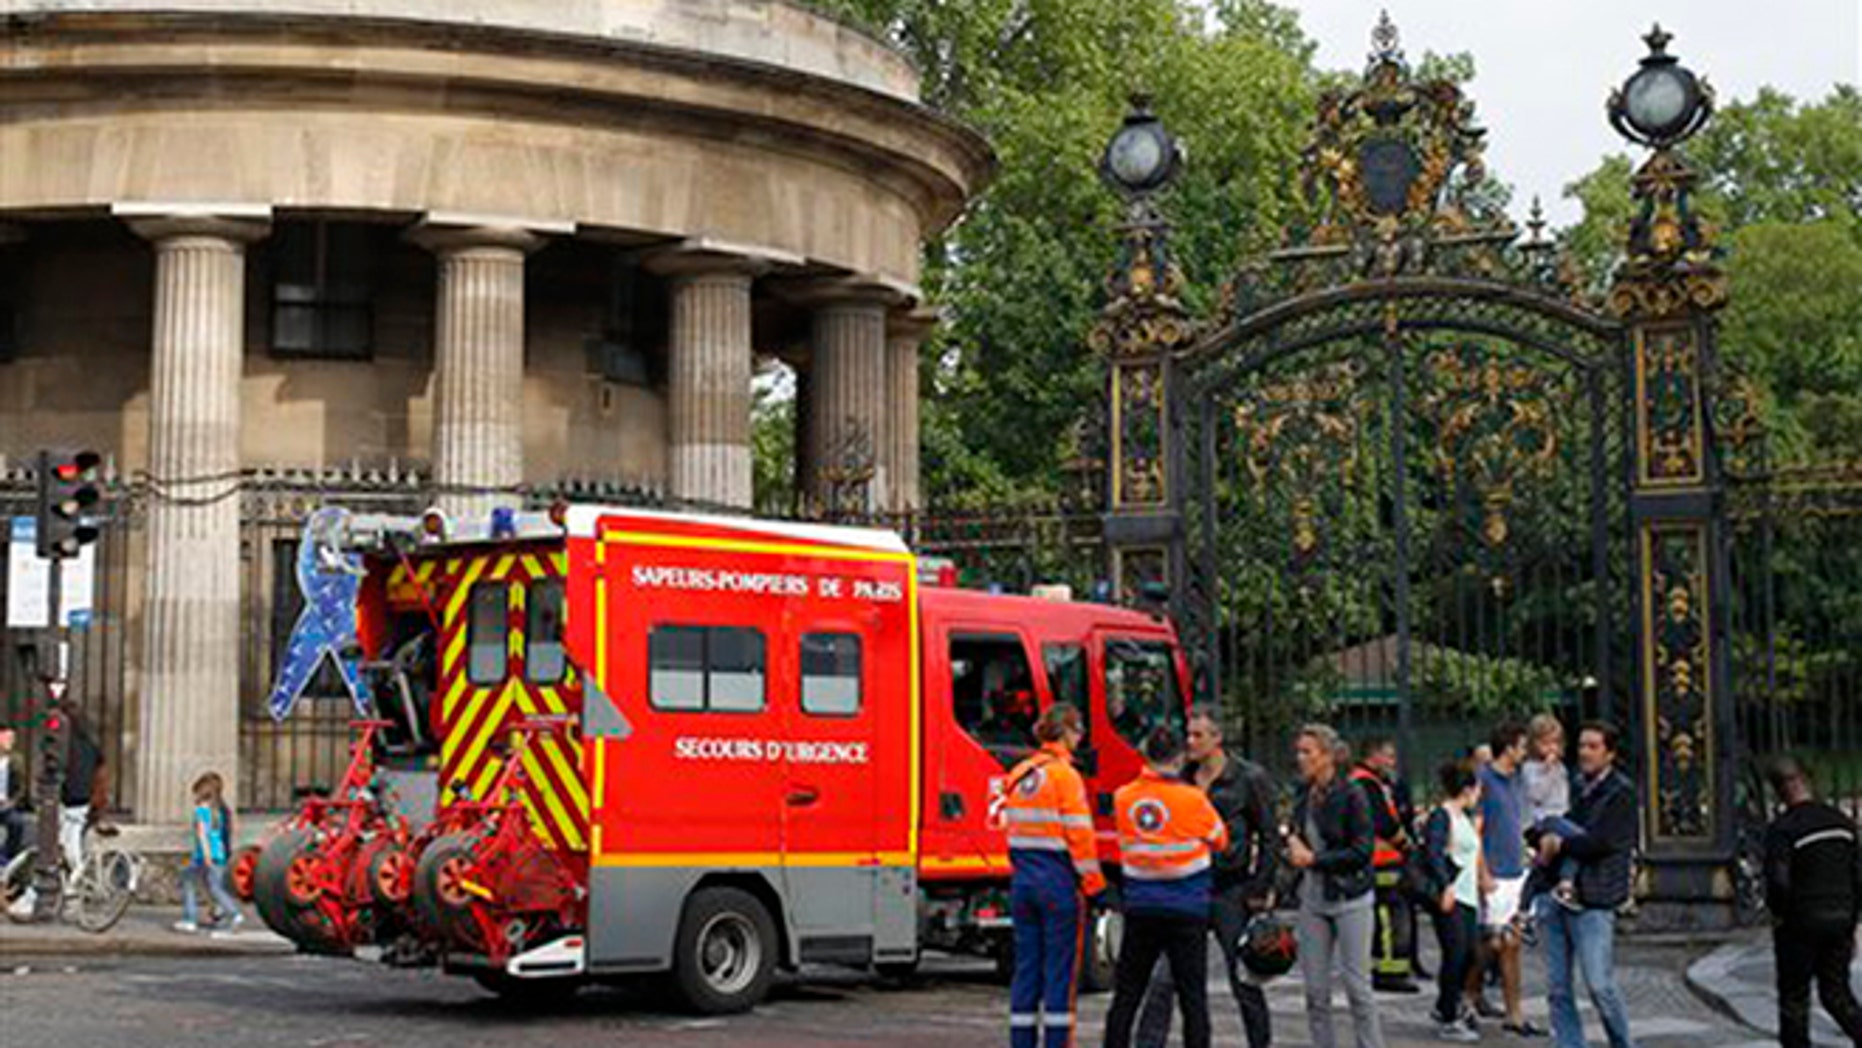 A fire truck is parked at the entrance to Monceau parc in the center of Paris, France, Saturday, May 28, 2016, after a lightning bolt crashed down onto a Paris park, striking 11 people at a child's birthday party. (AP Photo/Francois Mori)